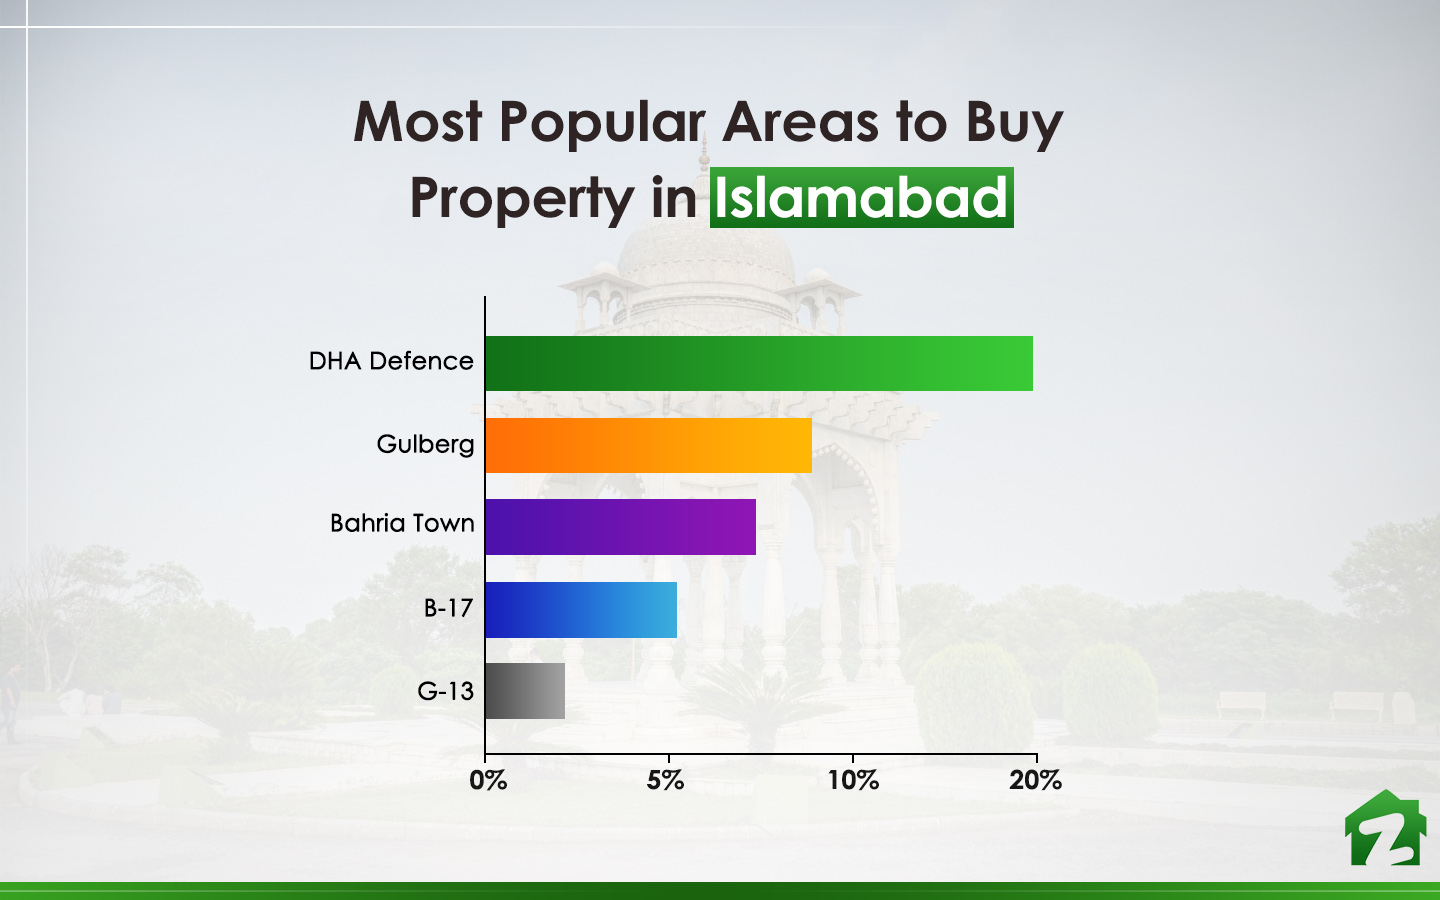 Popular areas of Islamabad to buy property